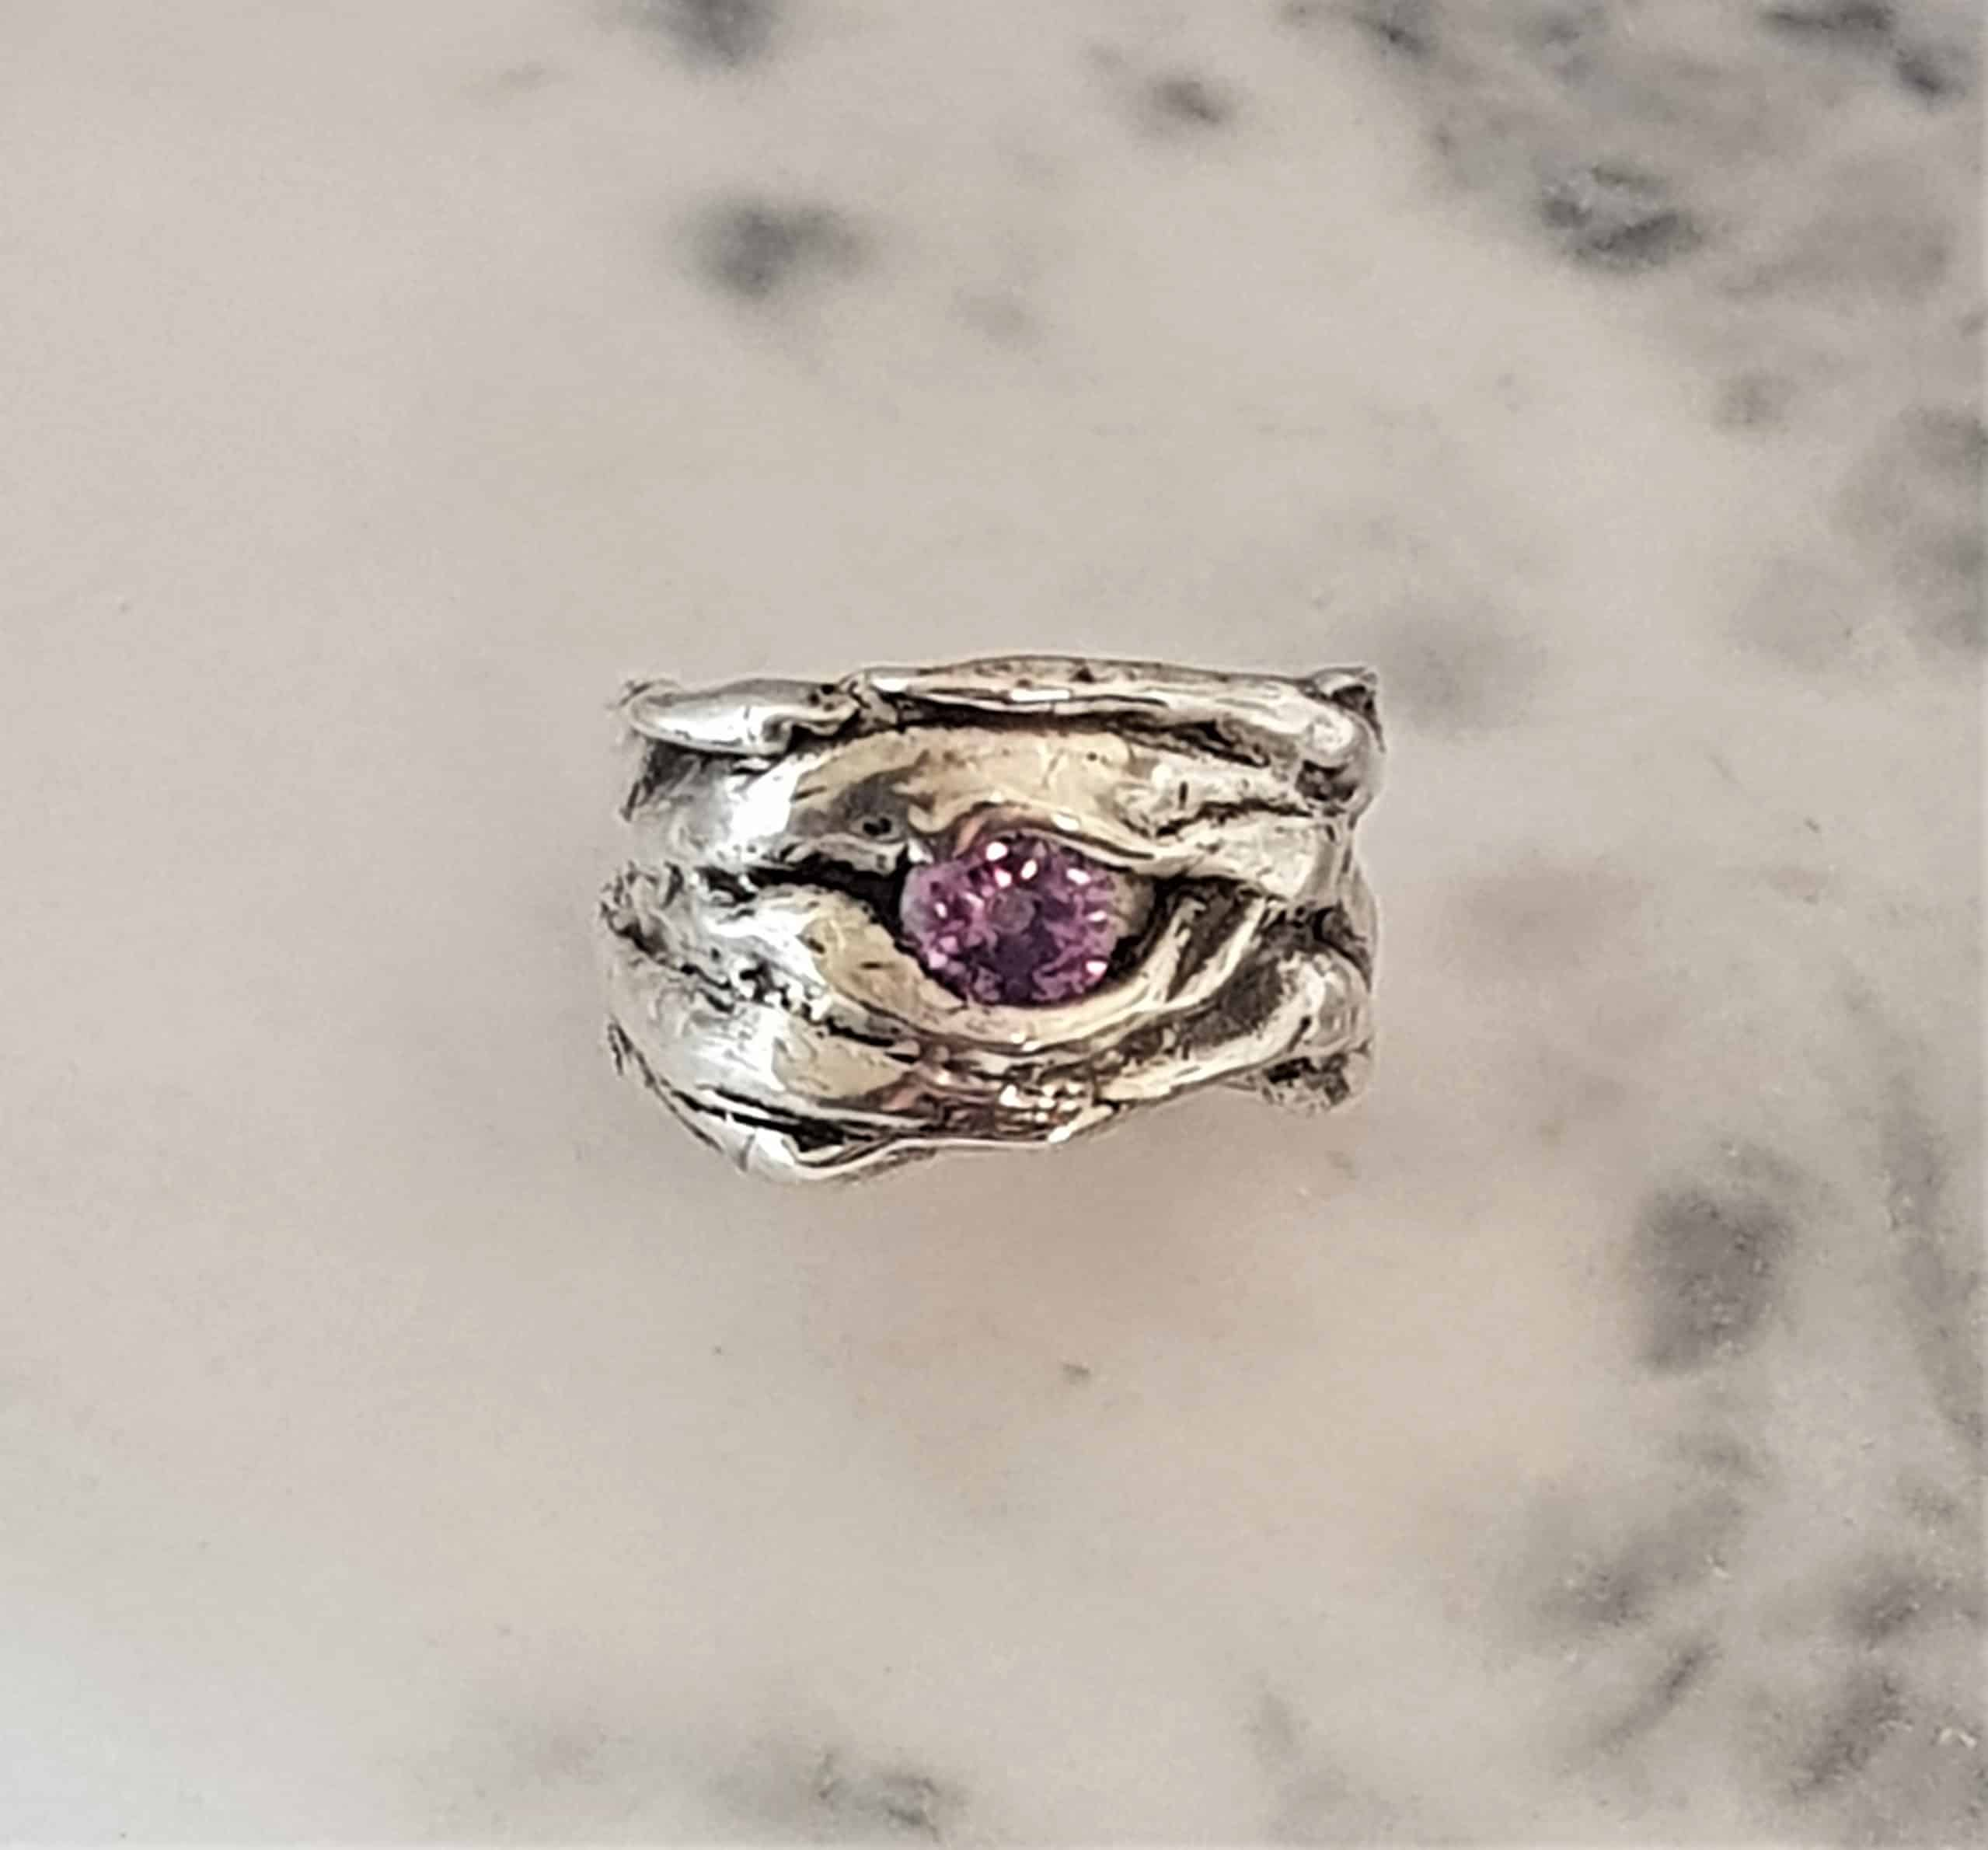 Size Q Crumpled Texture Ring With Lab Alexandrite- By Corinne Lomon